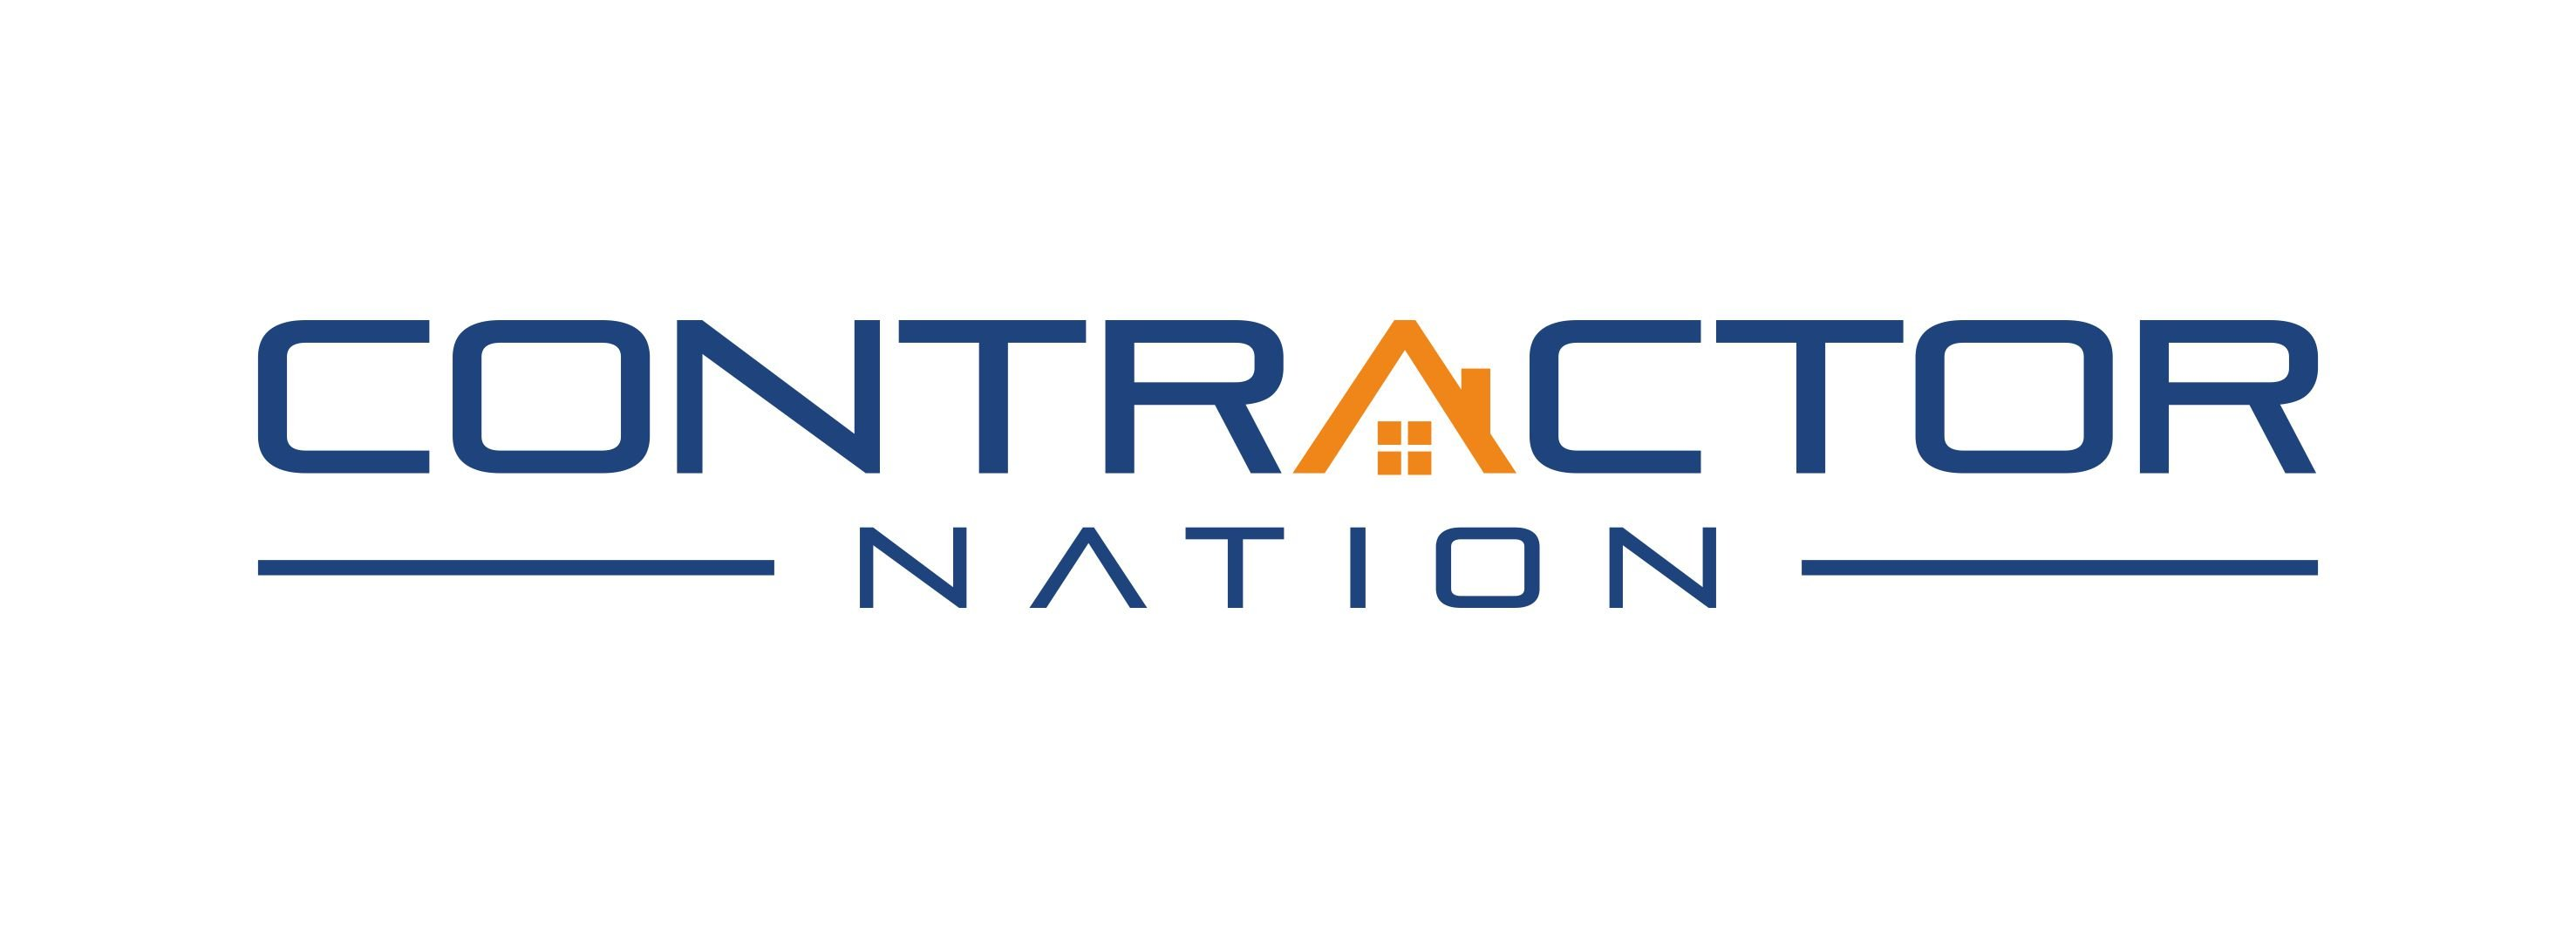 Contractor Nation